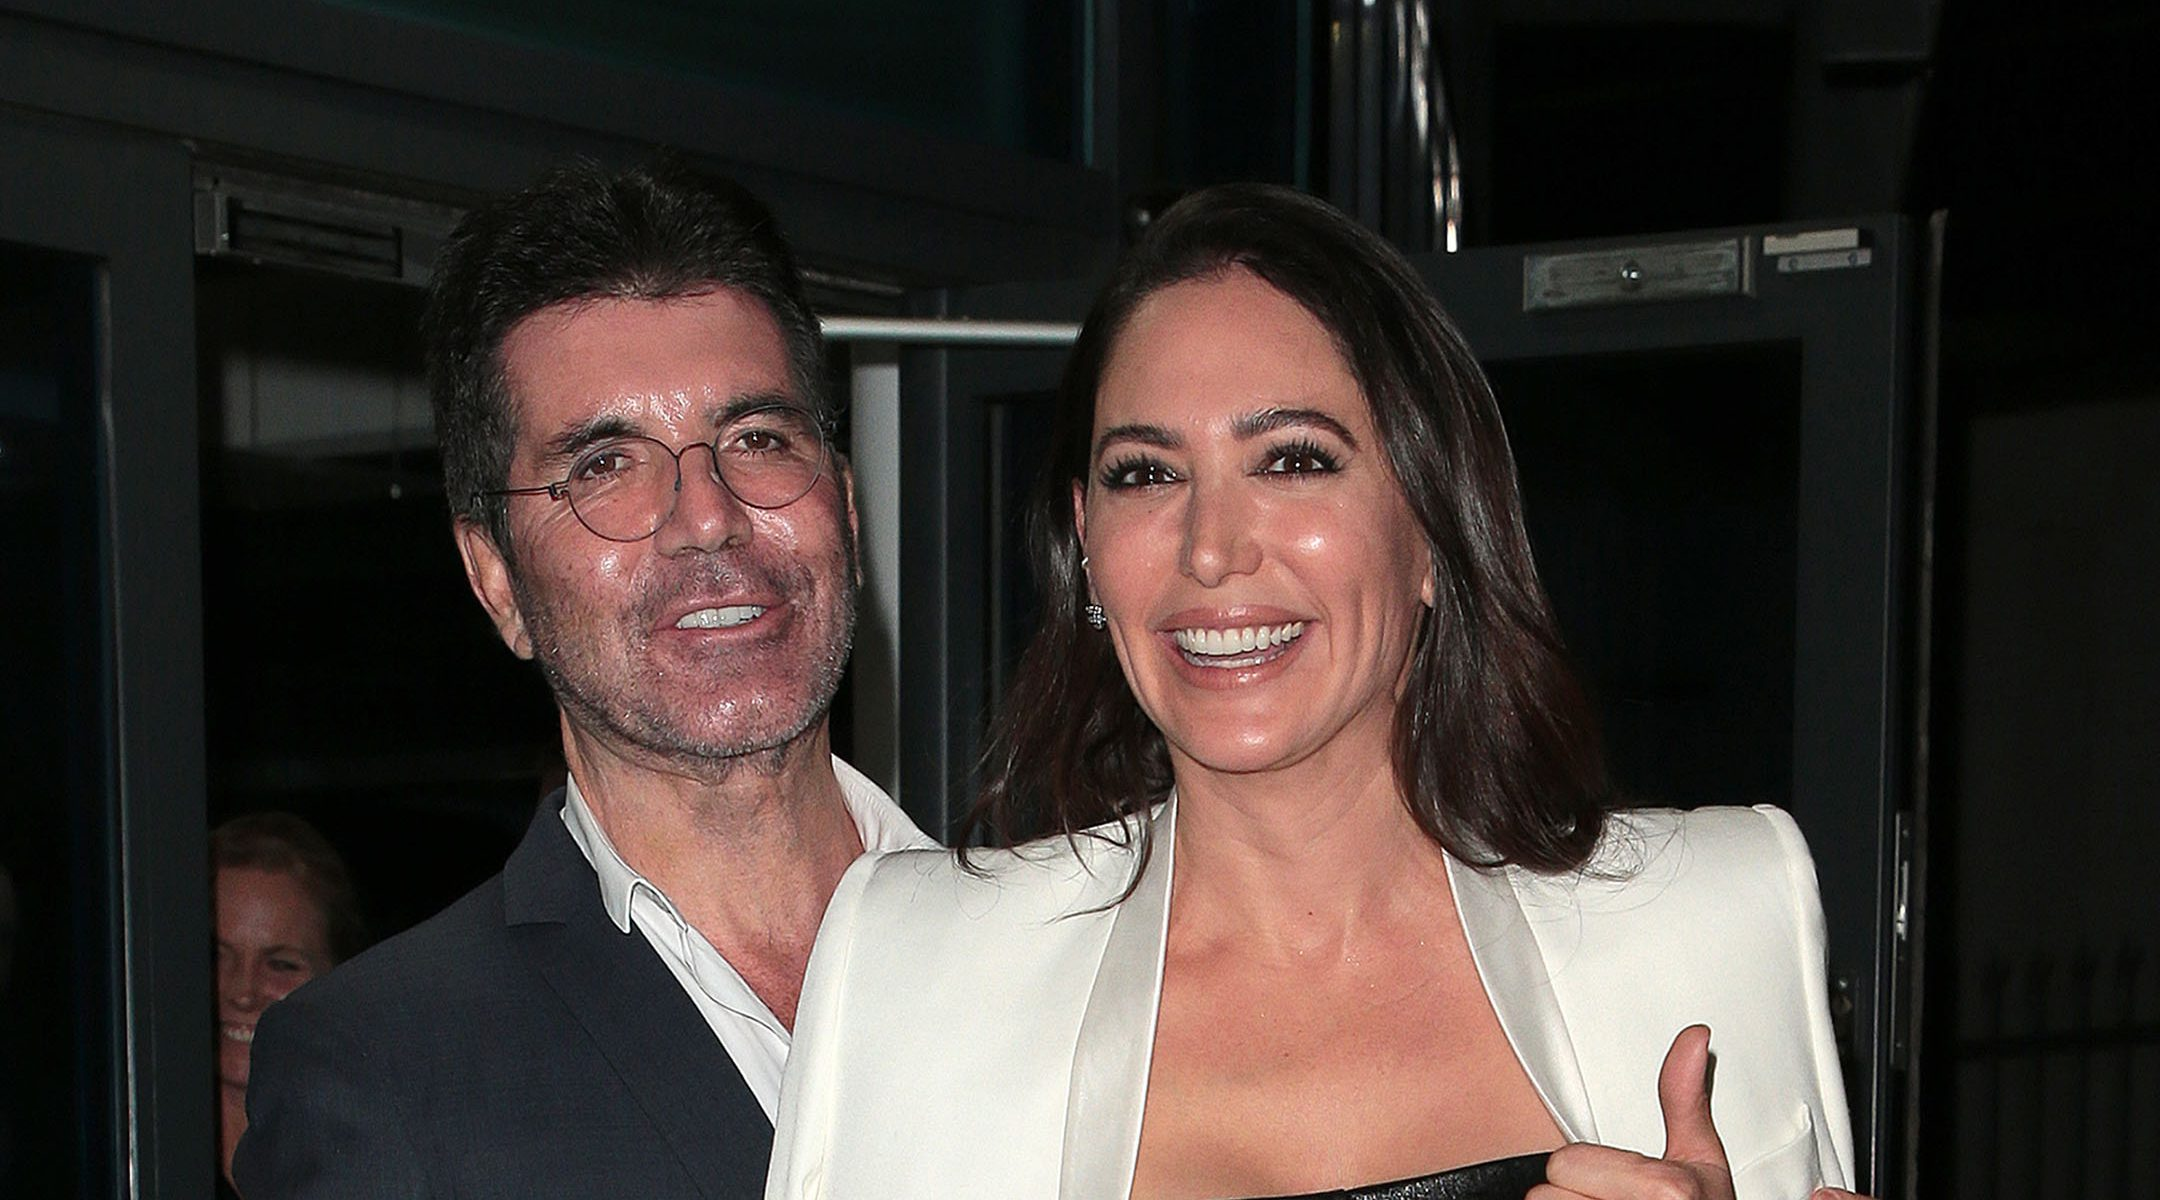 Simon Cowell and his wife Lauren Silverman leave LH2 studios after Celebrity X Factor on November 23, 2019 in London, UK. (Ricky Vigil M/GC Images)